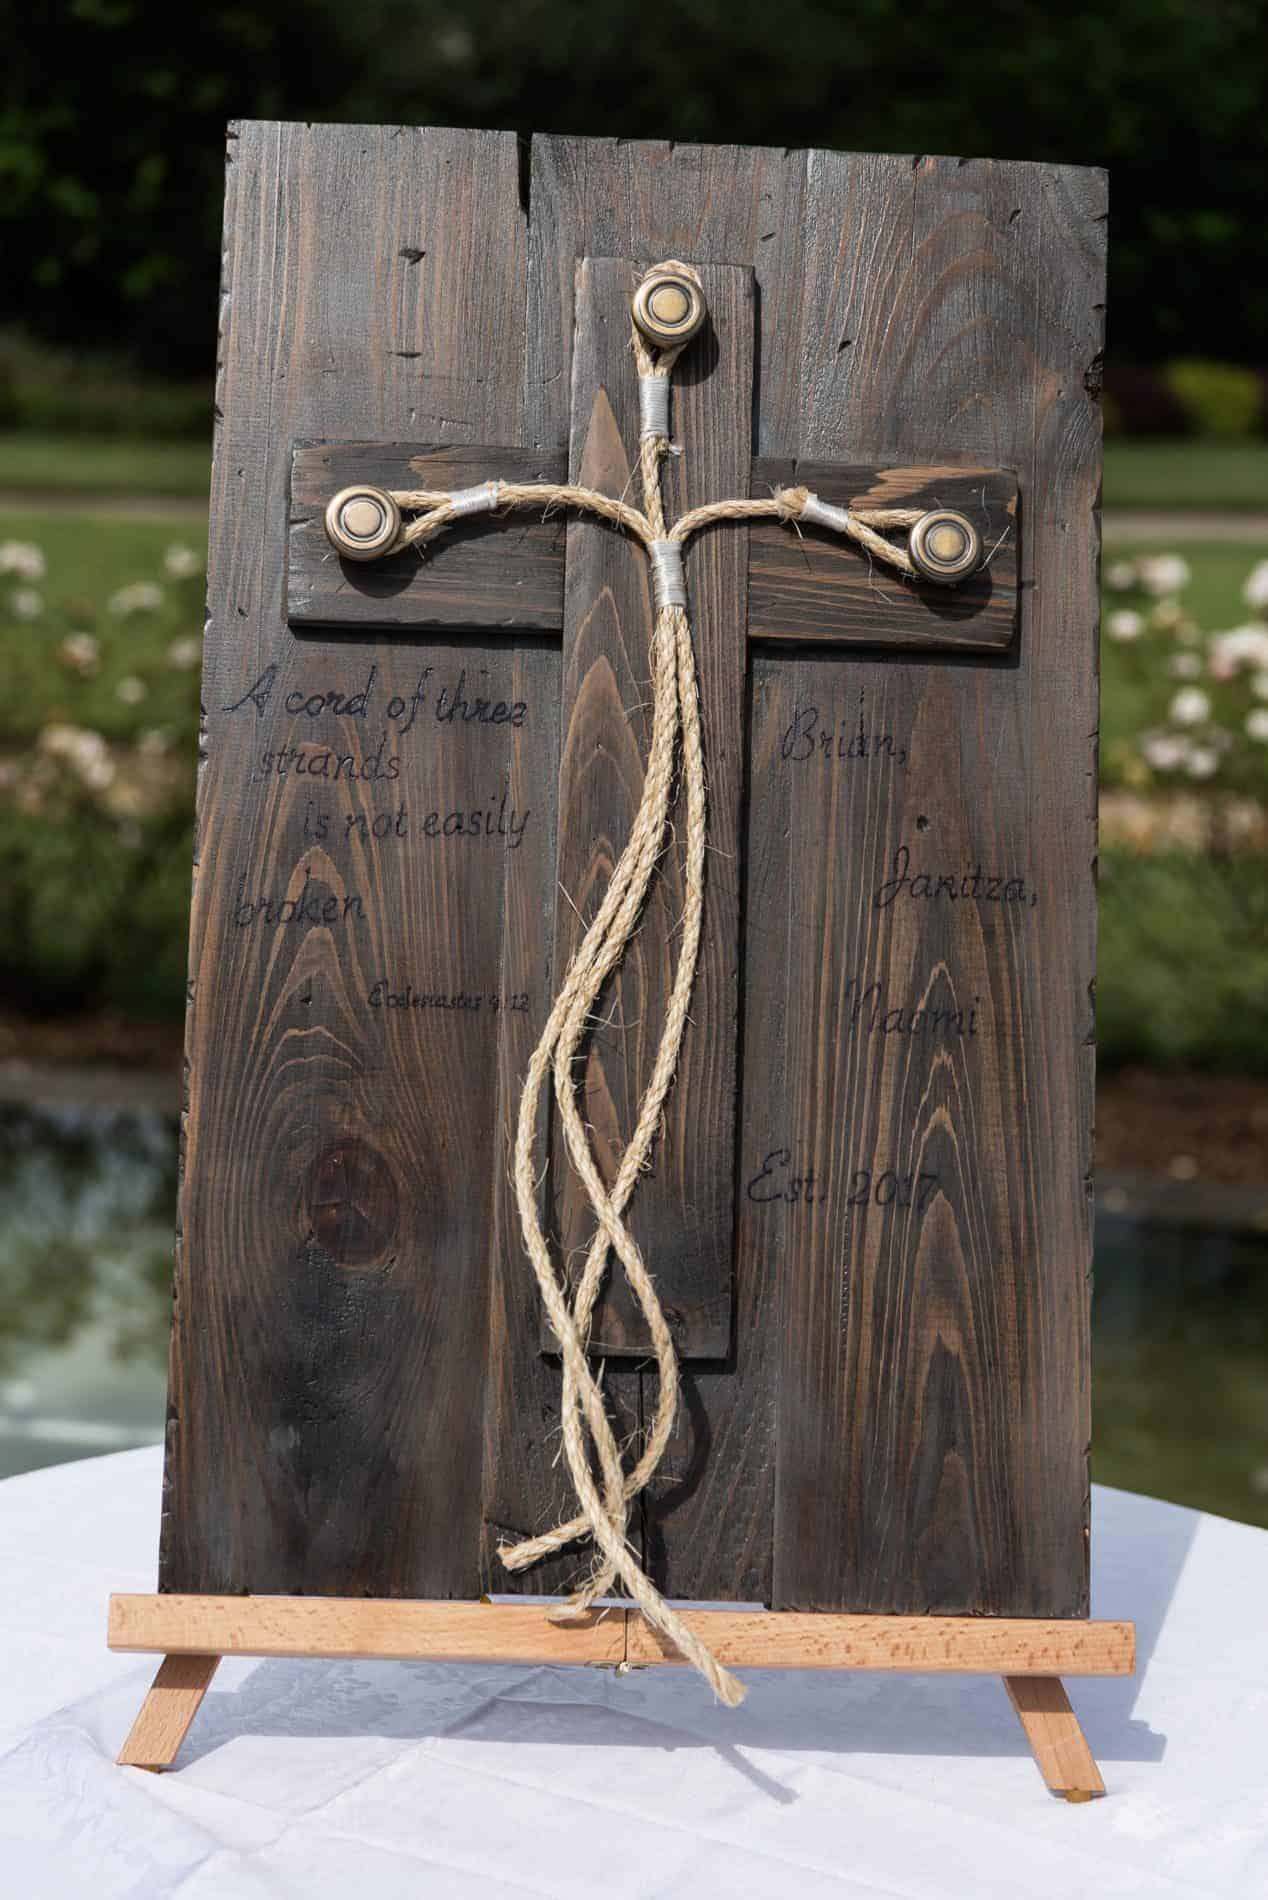 Wooden Tie the Knot Display but at a Outdoor Rustic Ceremony